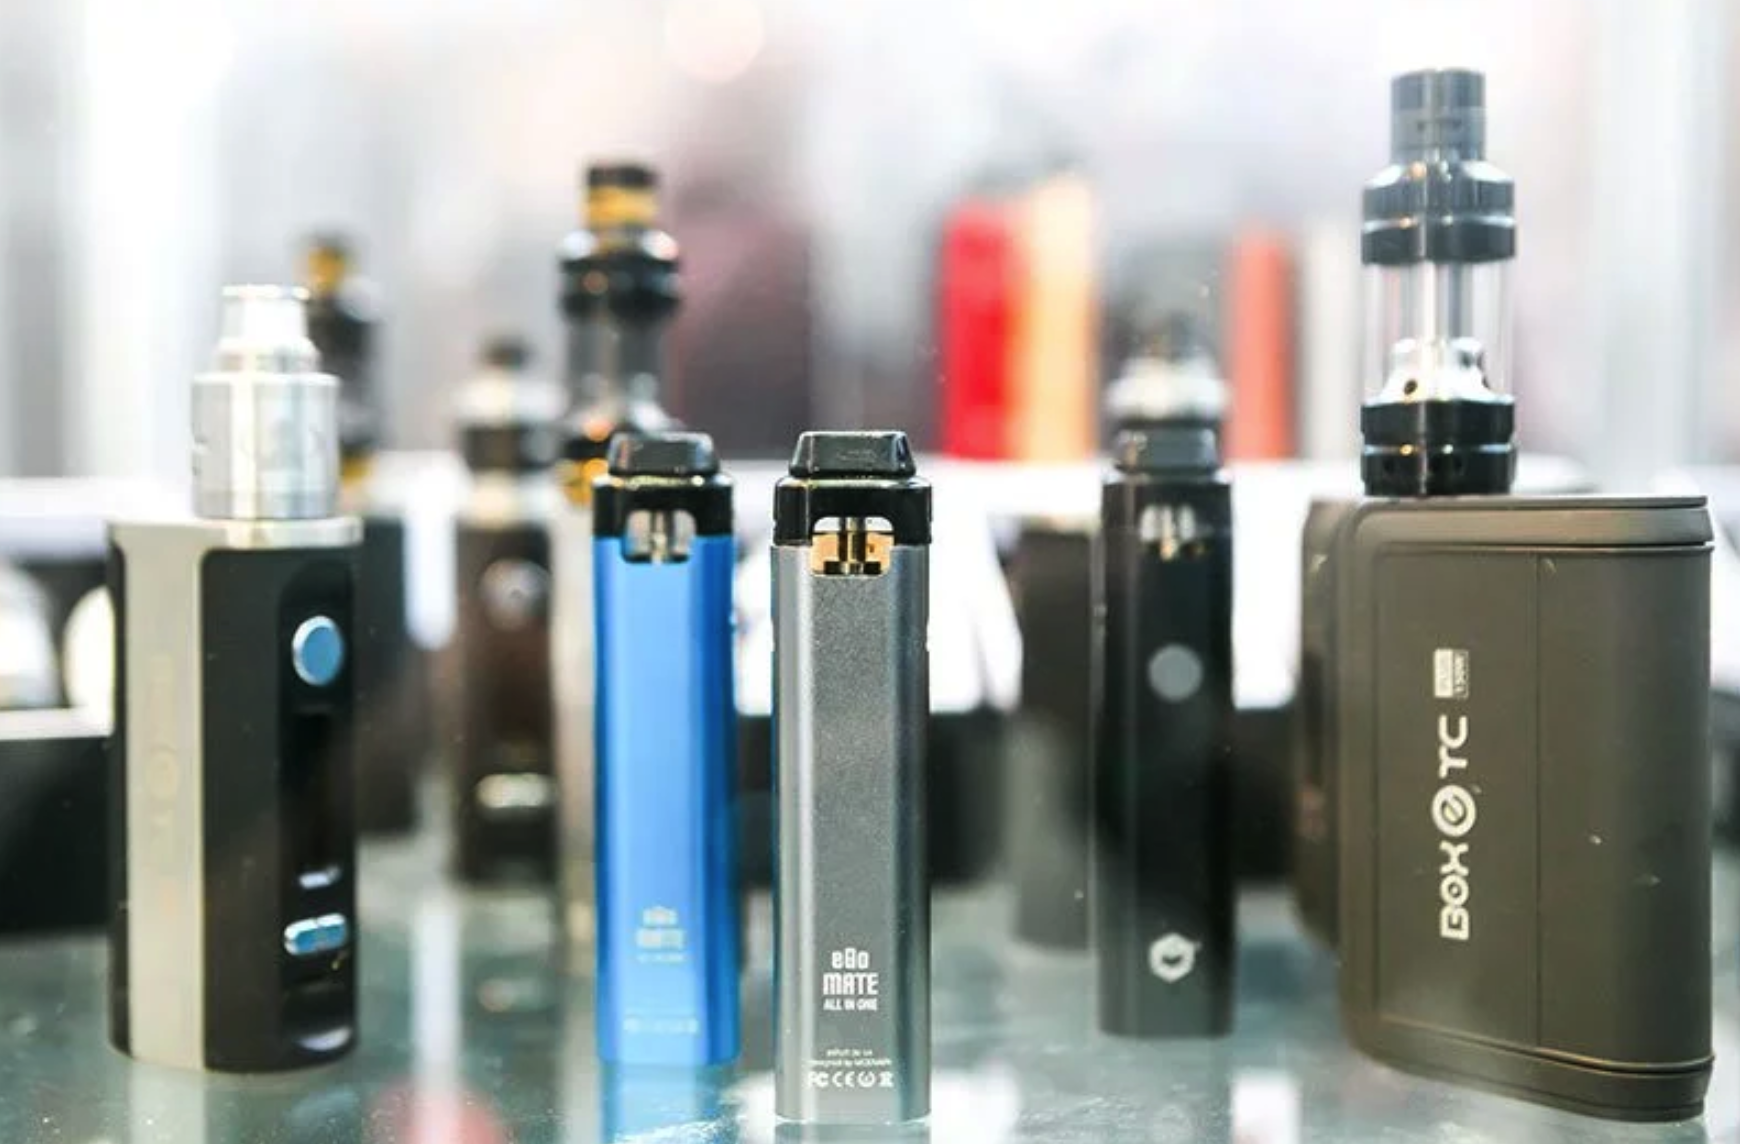 5 Cheap Box Mods For Sale Under $50